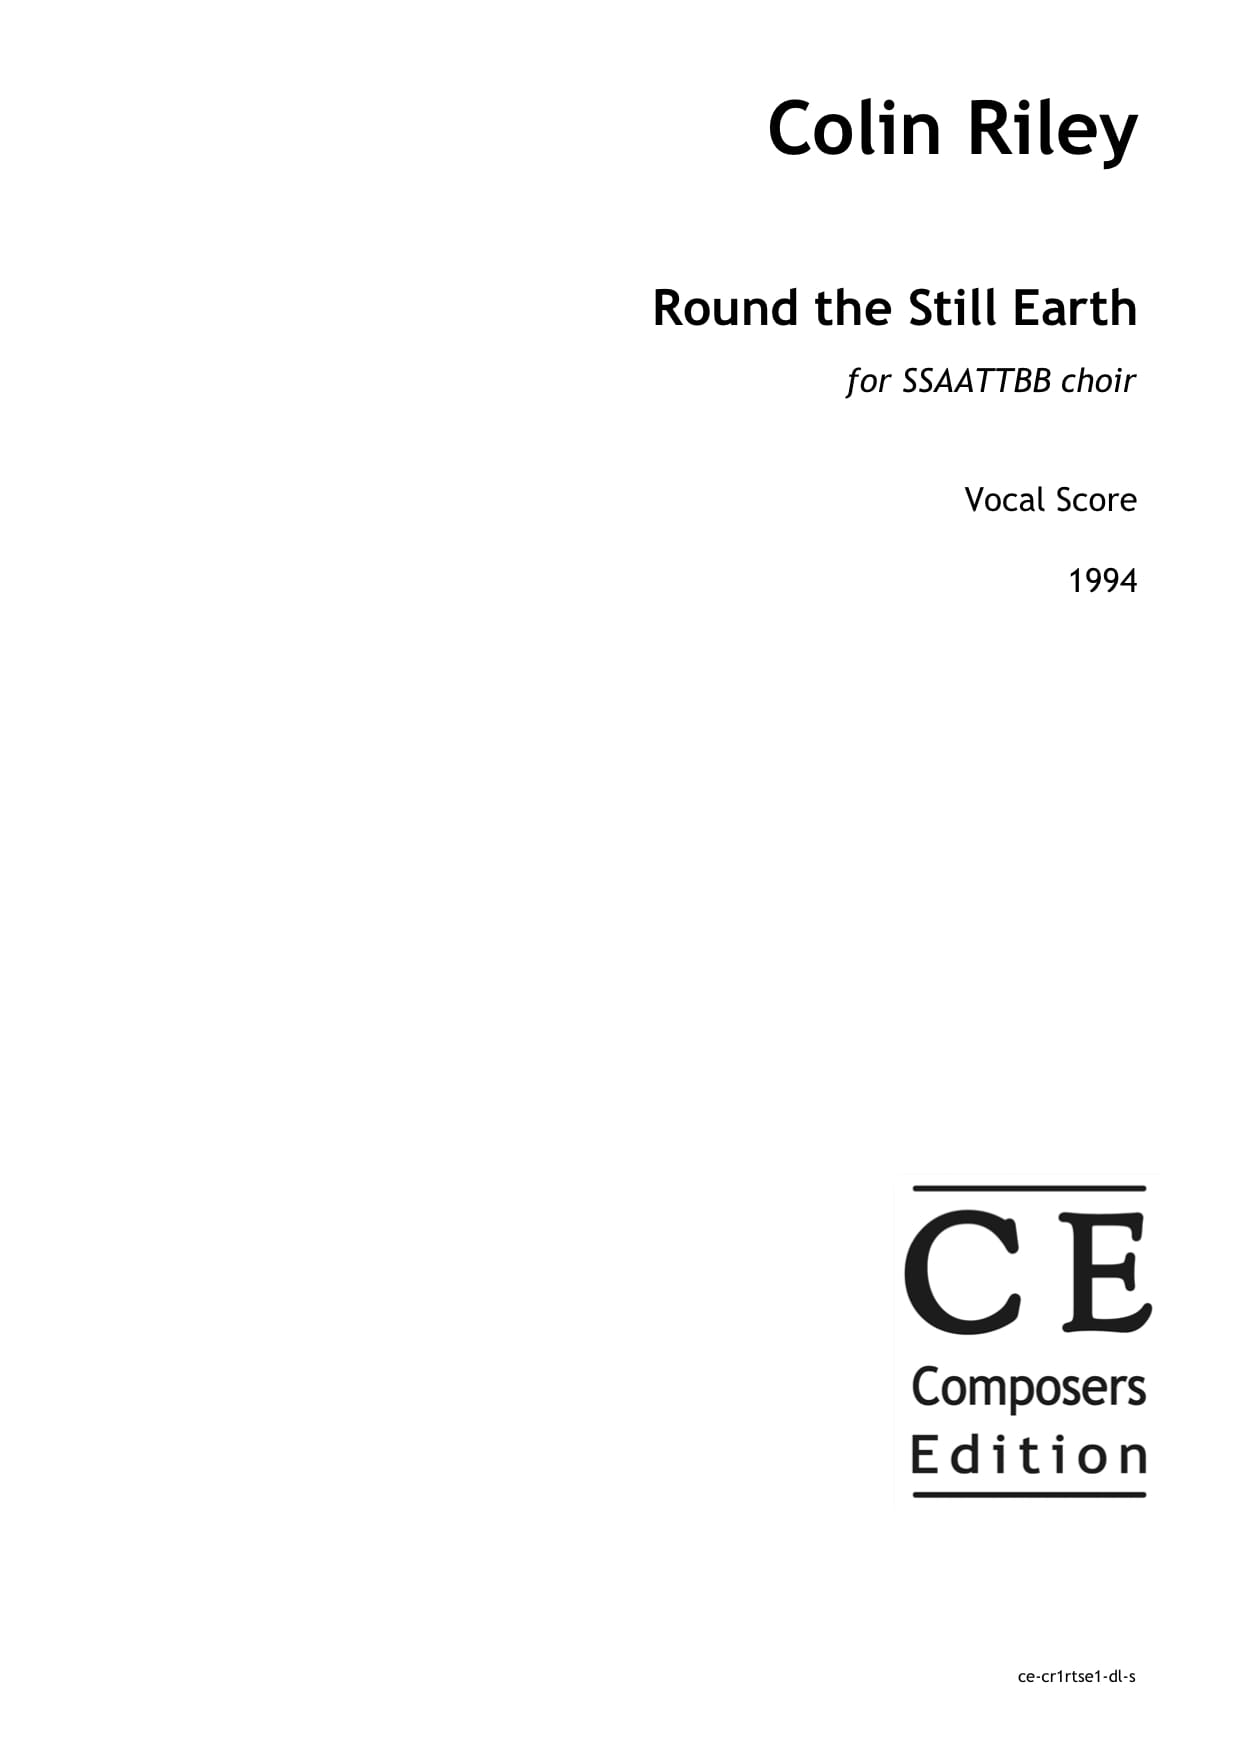 Colin Riley: Round the Still Earth for SSAATTBB choir